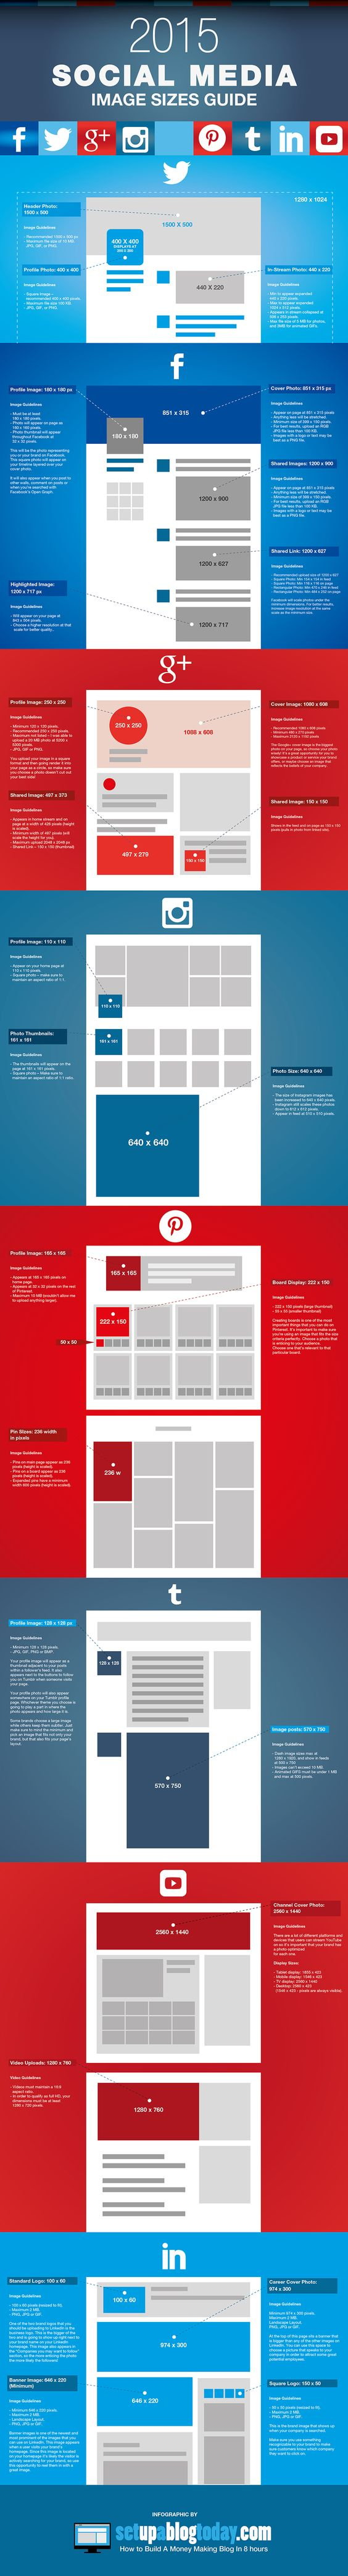 This ‪#‎SocialMedia‬ image Guide gives you the exact dimensions for the top 8 social networks >>>